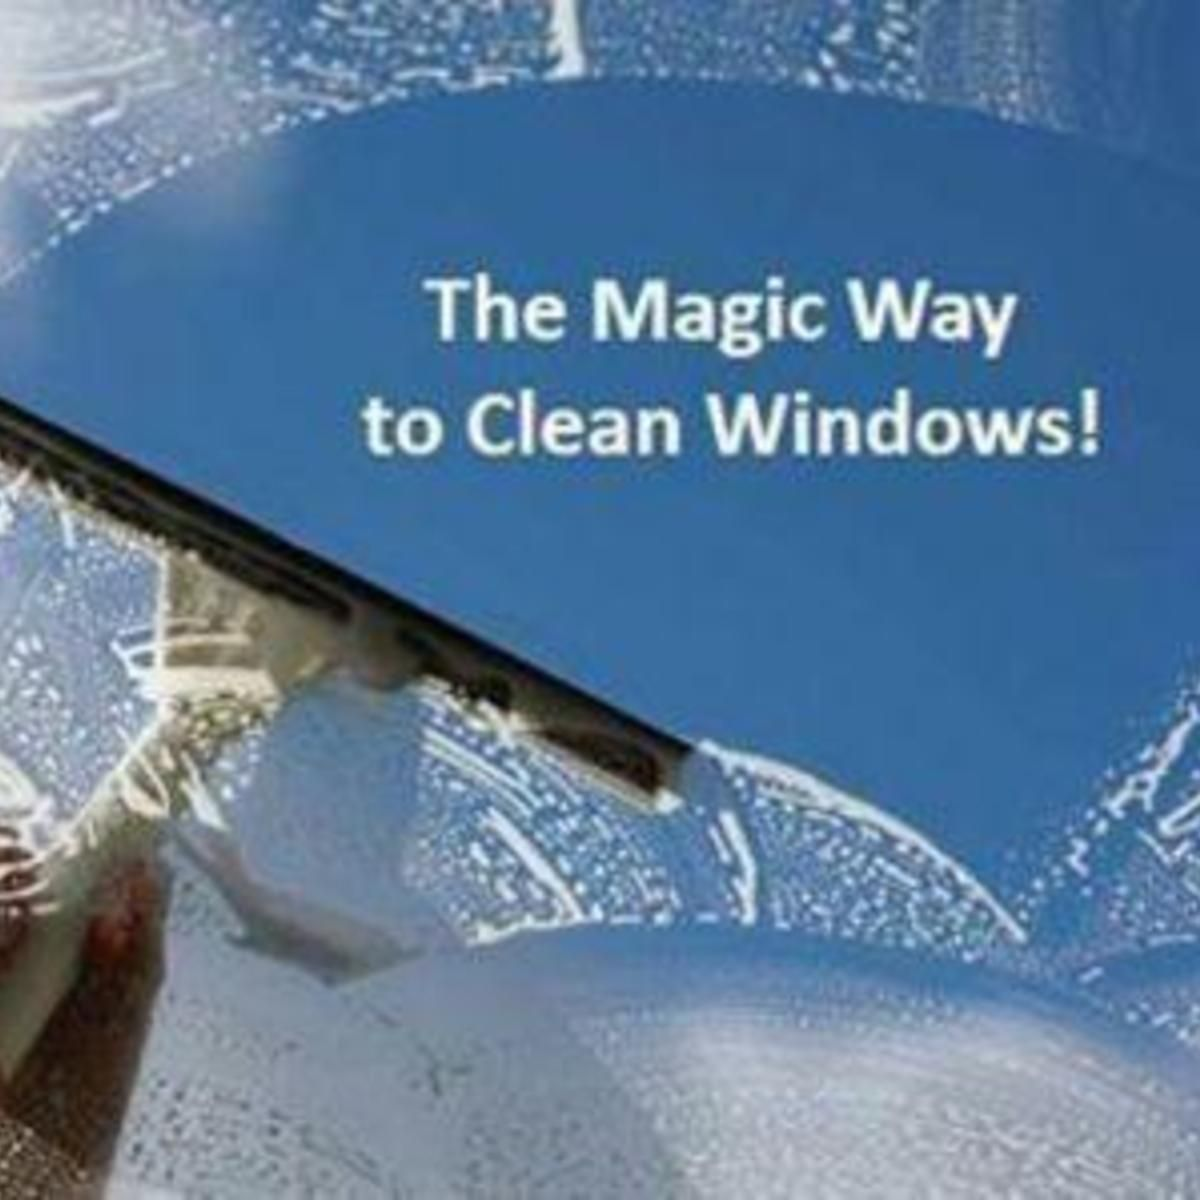 Magical Way To Clean Windows